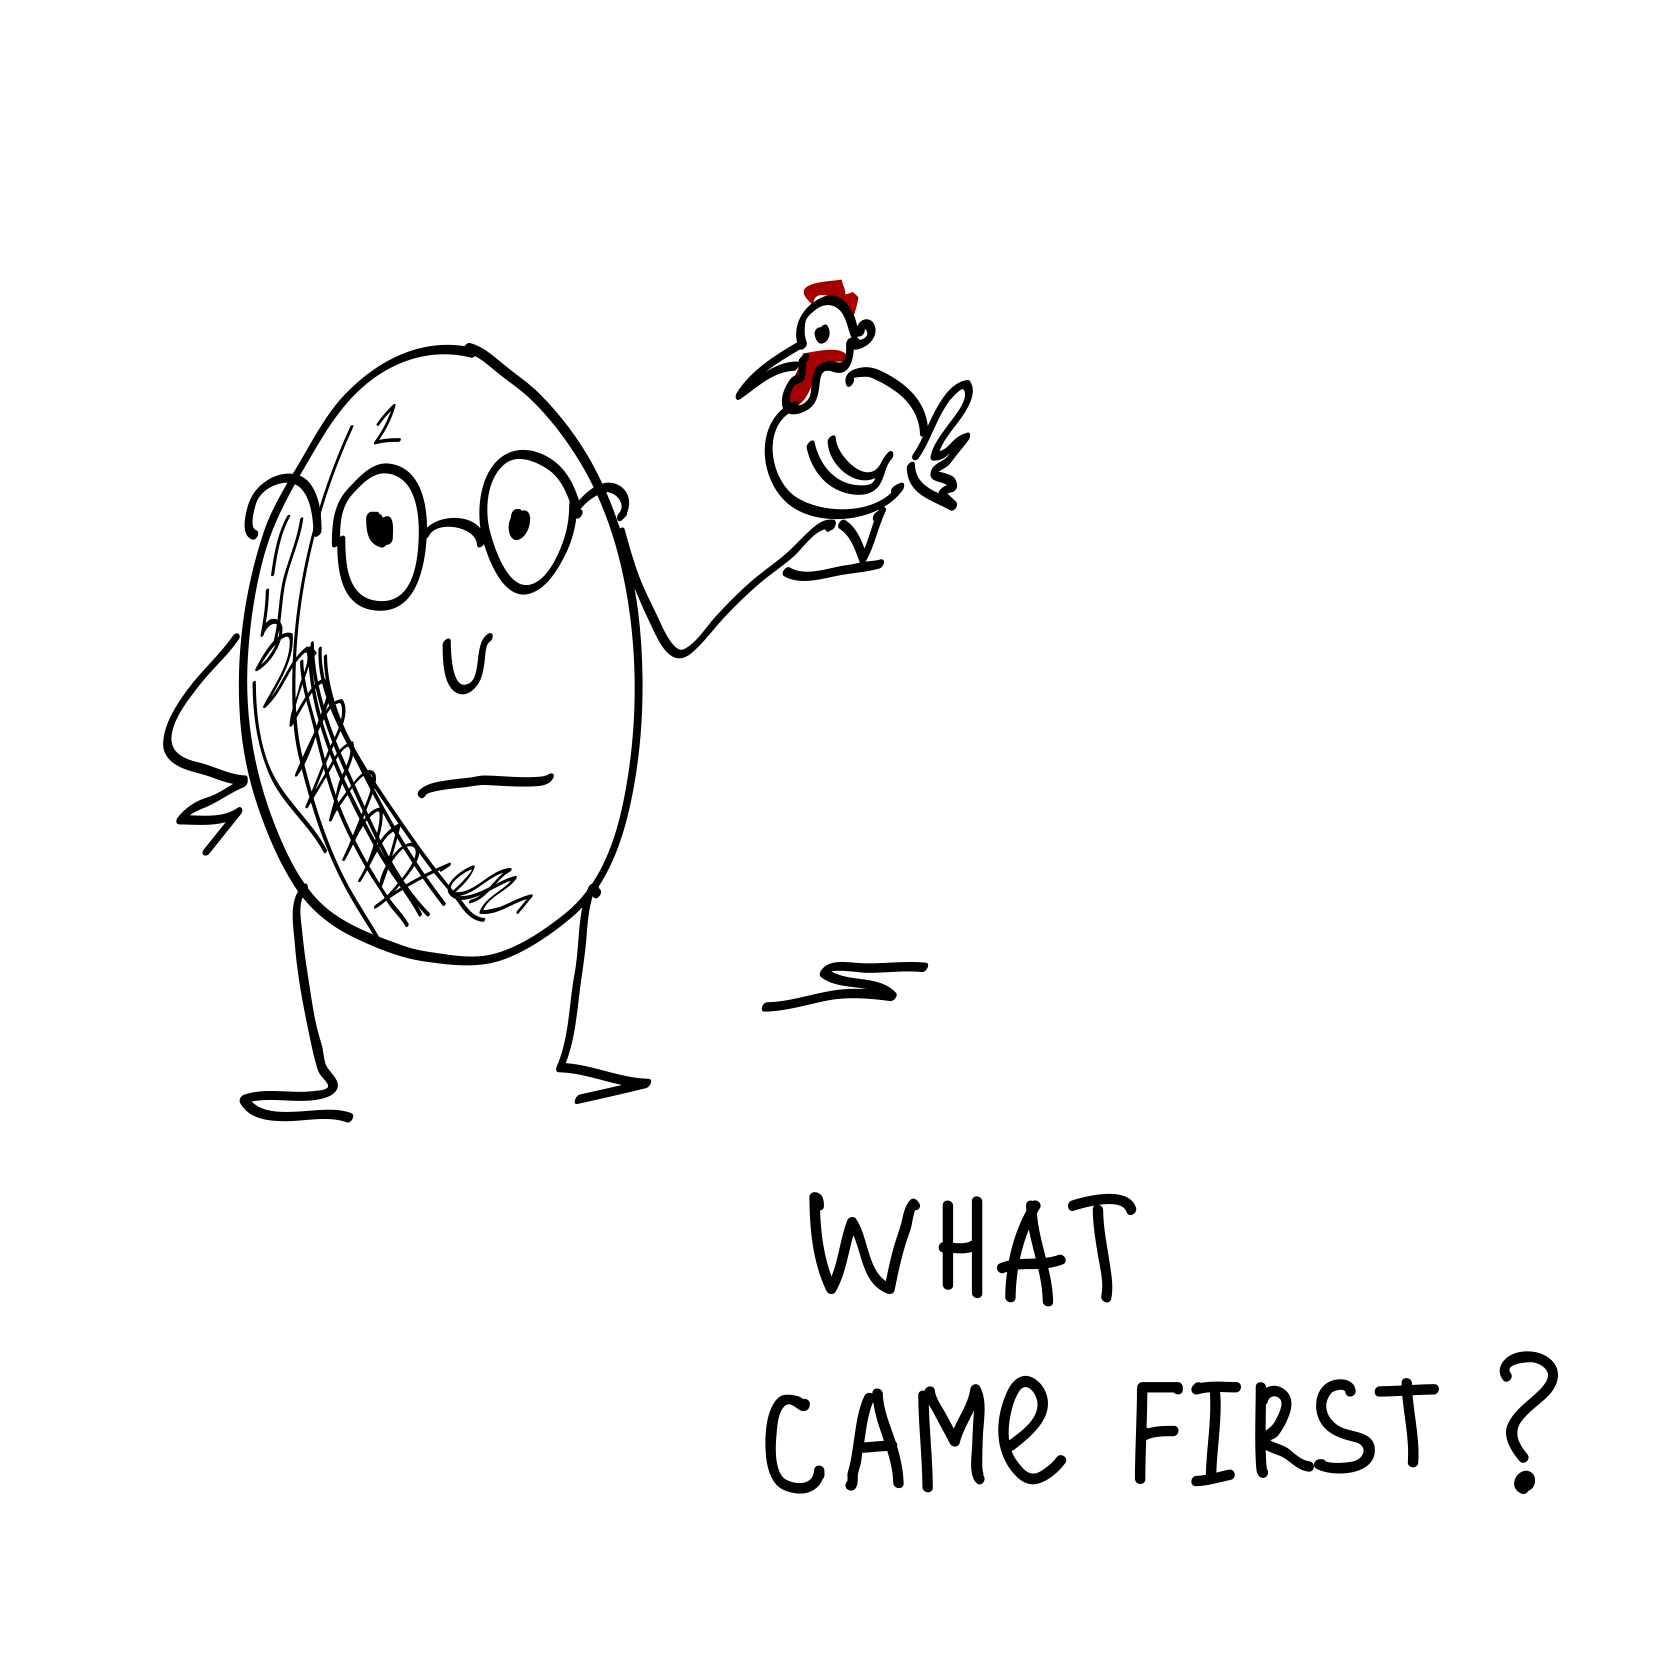 what came first